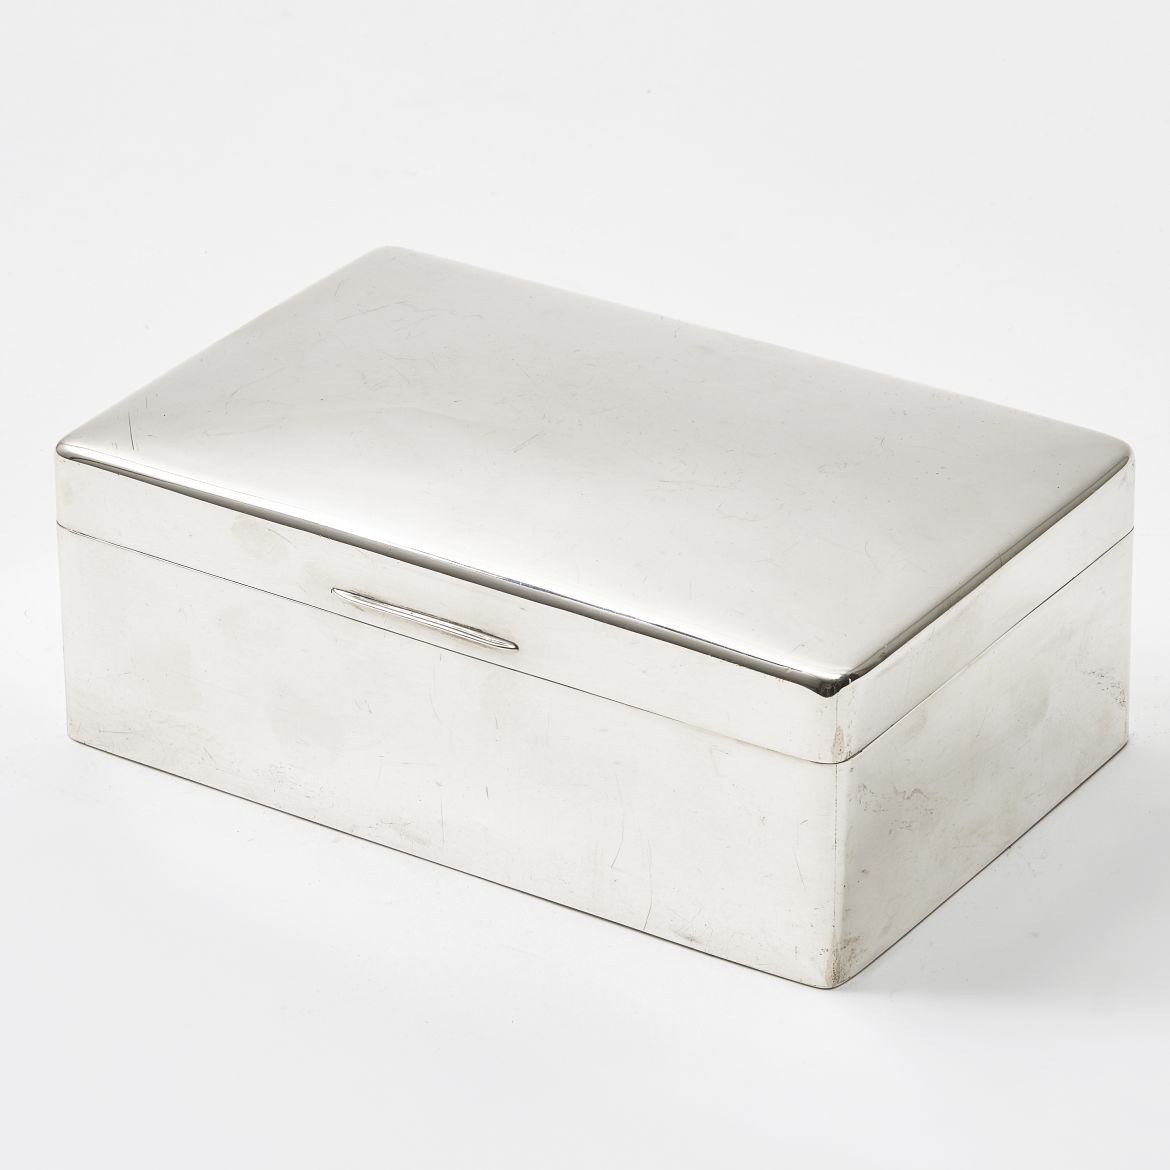 Adie Brothers Ltd Silver Humidor